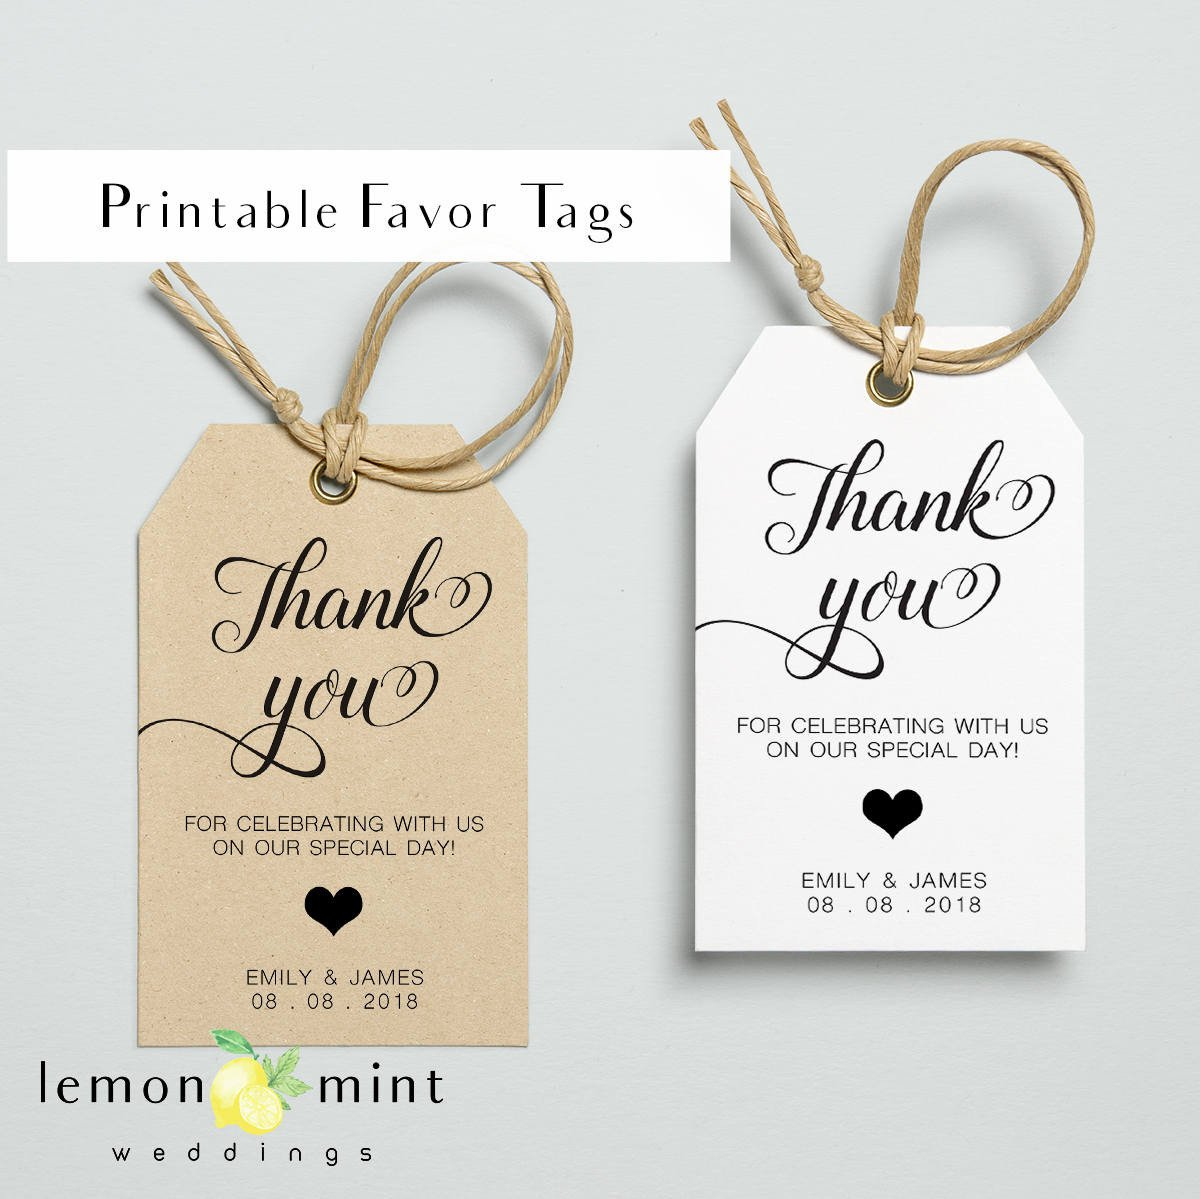 Free Printable Favor Tags Printable Favor Tags Printable Personal Favor Tag Wedding